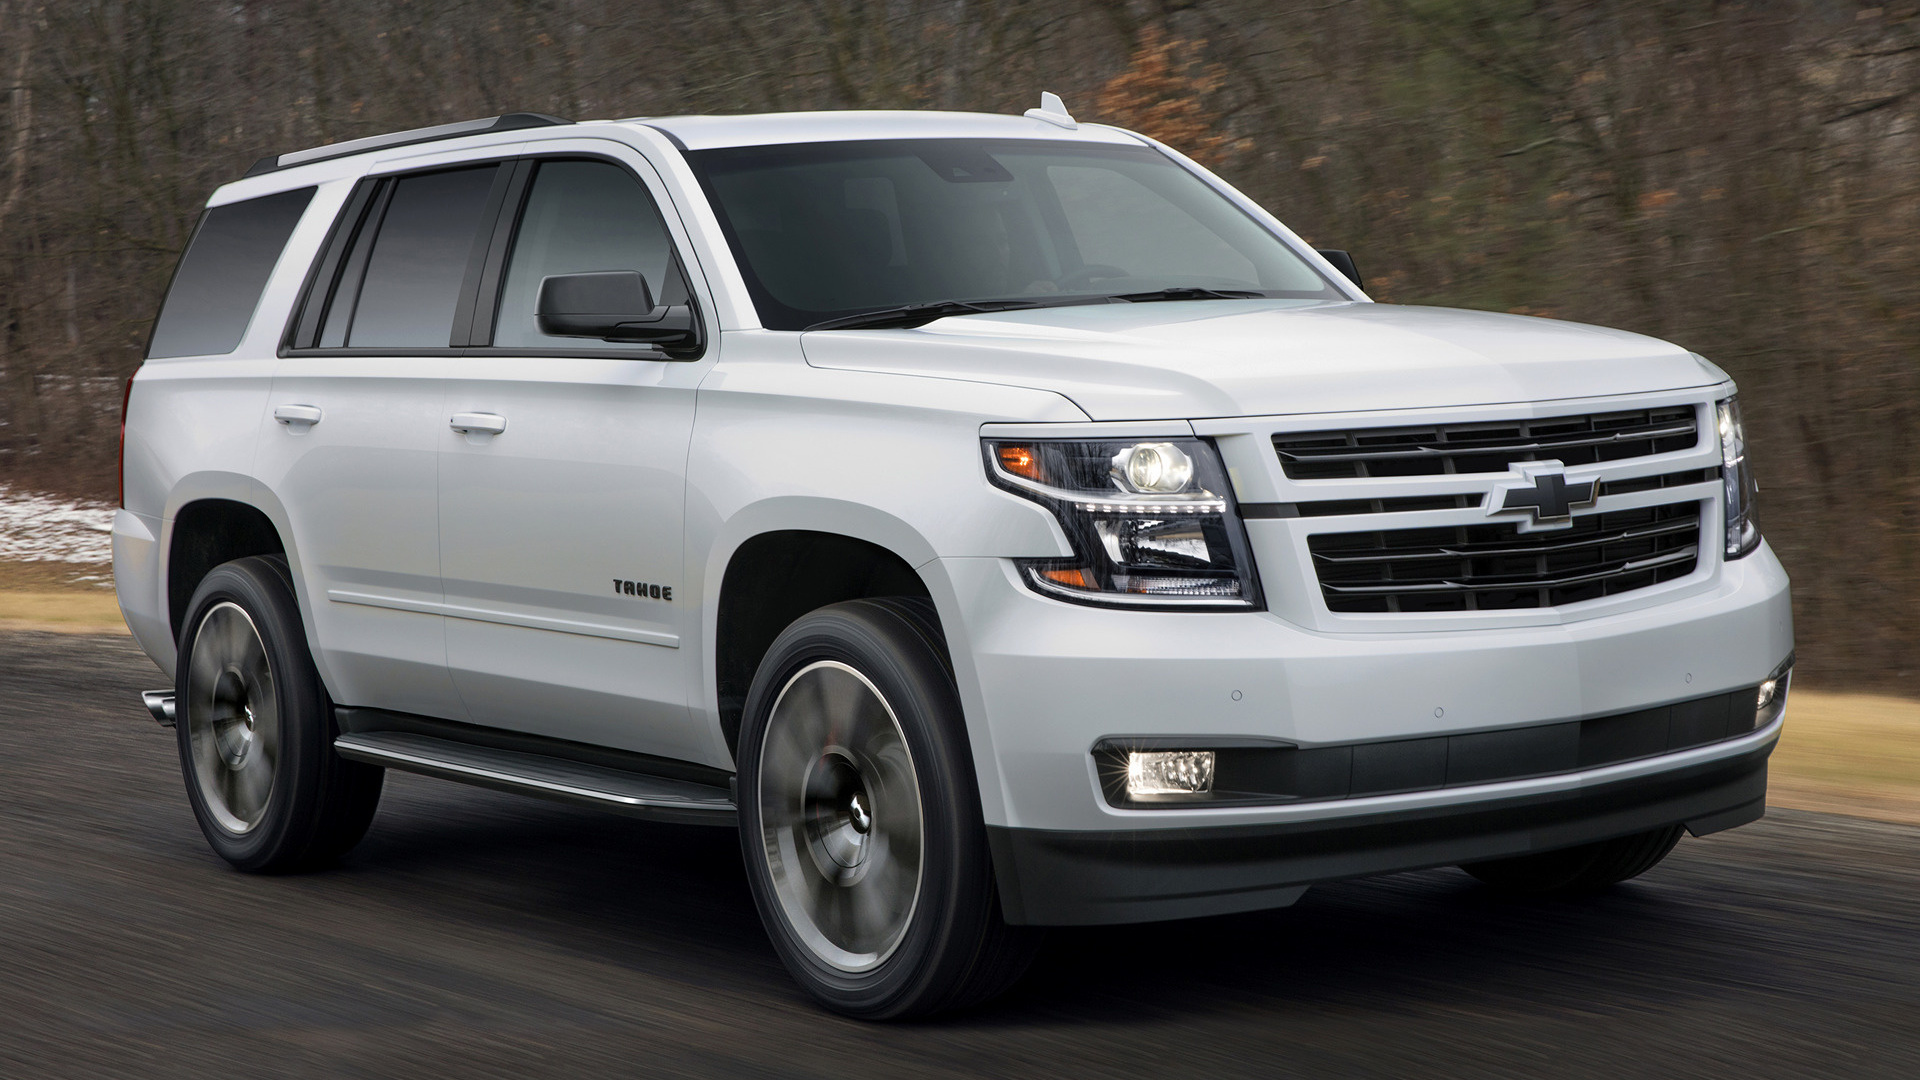 2018 Chevrolet Tahoe Rst Premier Wallpapers And Hd